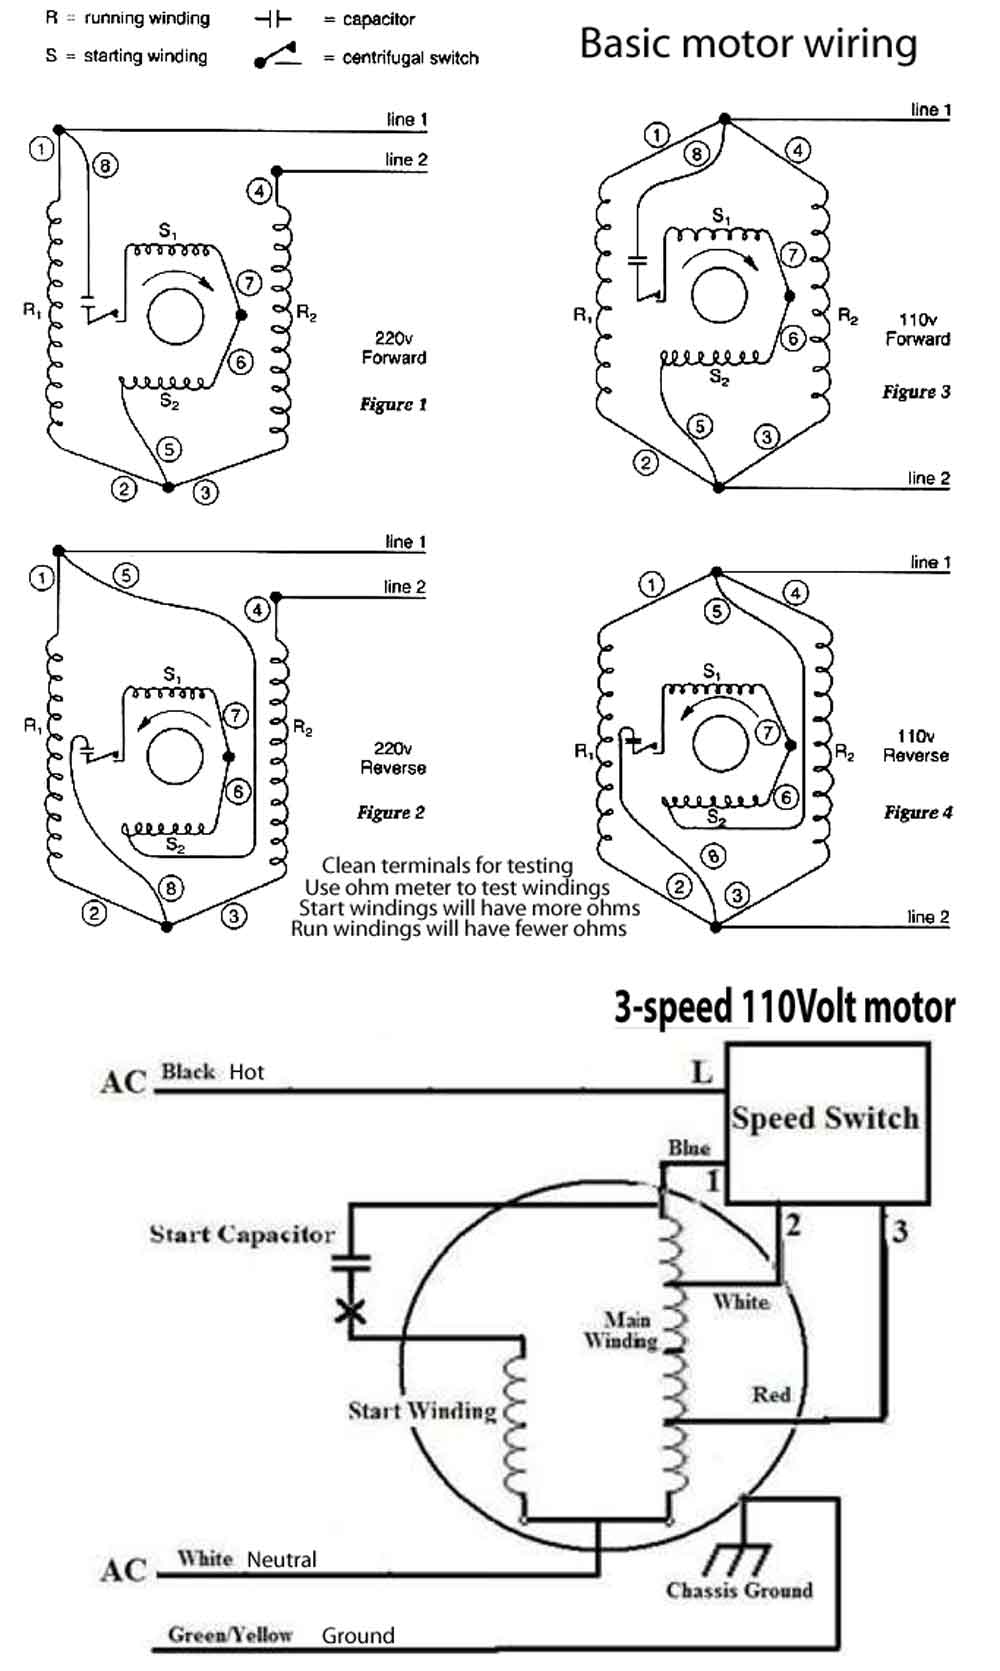 Motor wiring 500 how to wire 3 speed fan switch ceiling fan internal wiring diagram at bakdesigns.co